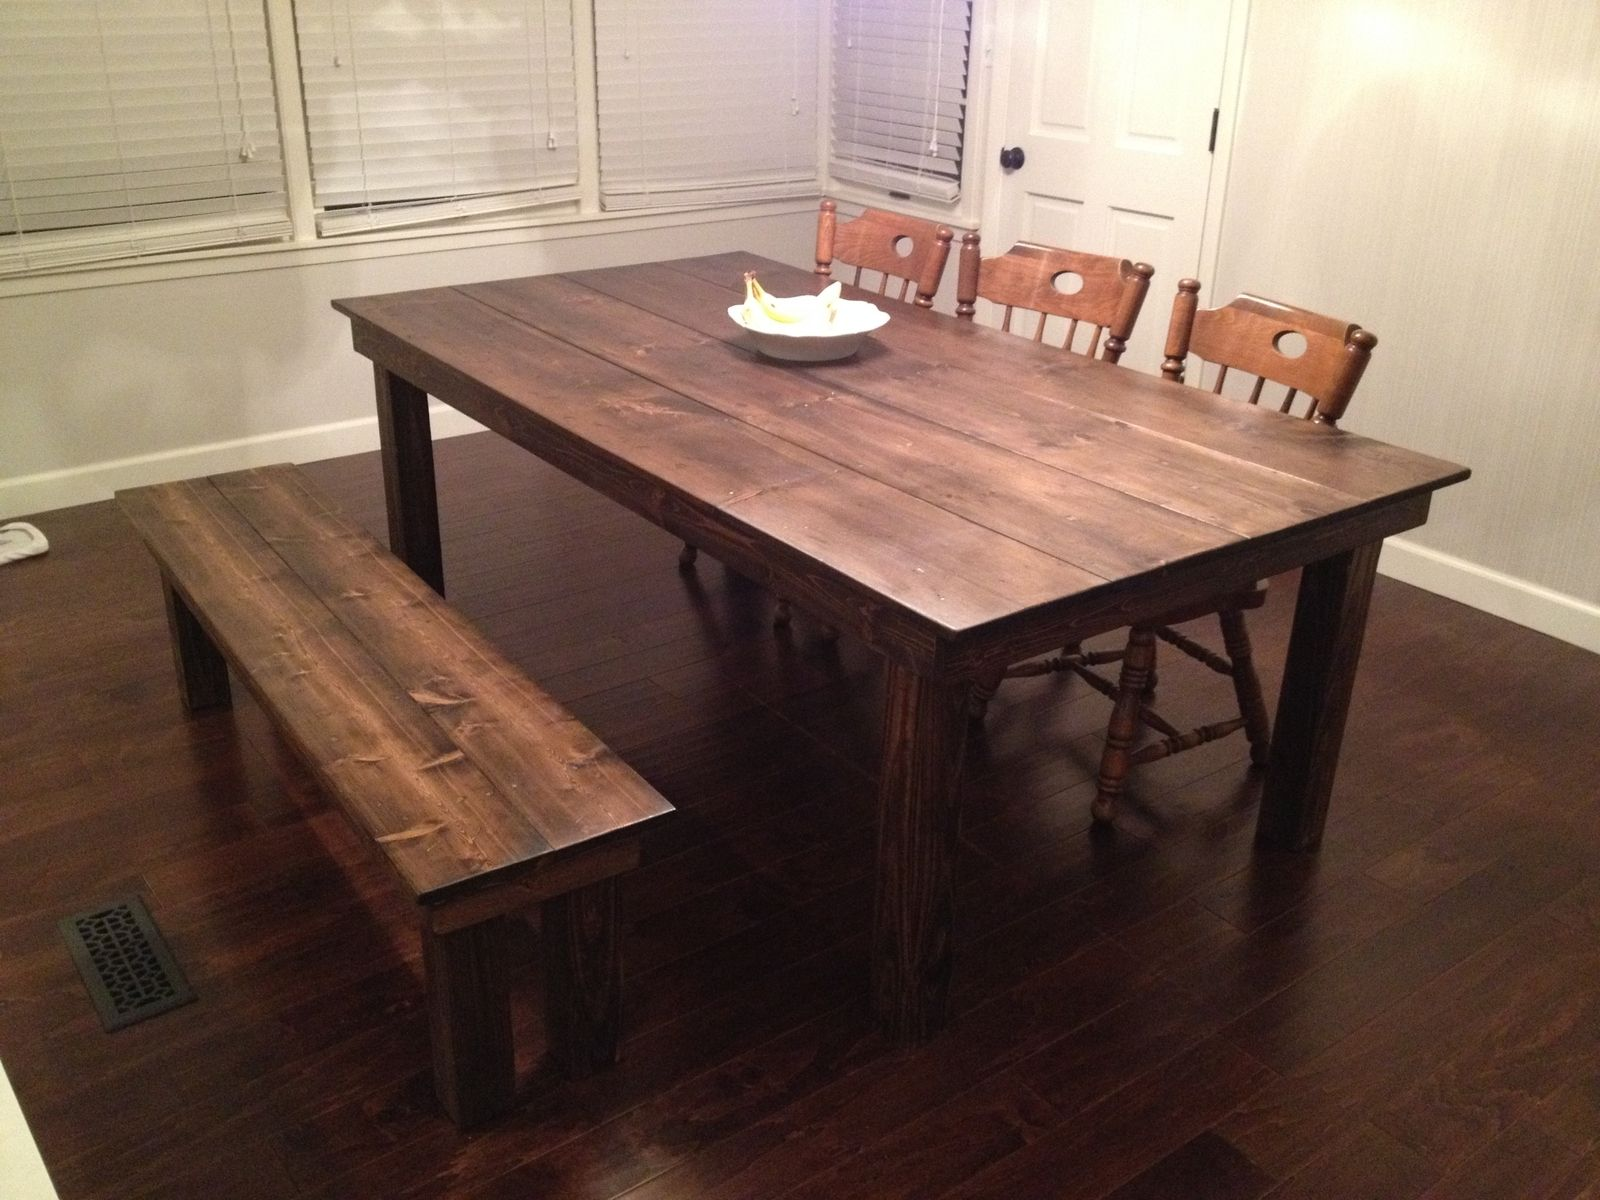 Custom farmhouse dining table by gypsum valley made Farm dining table